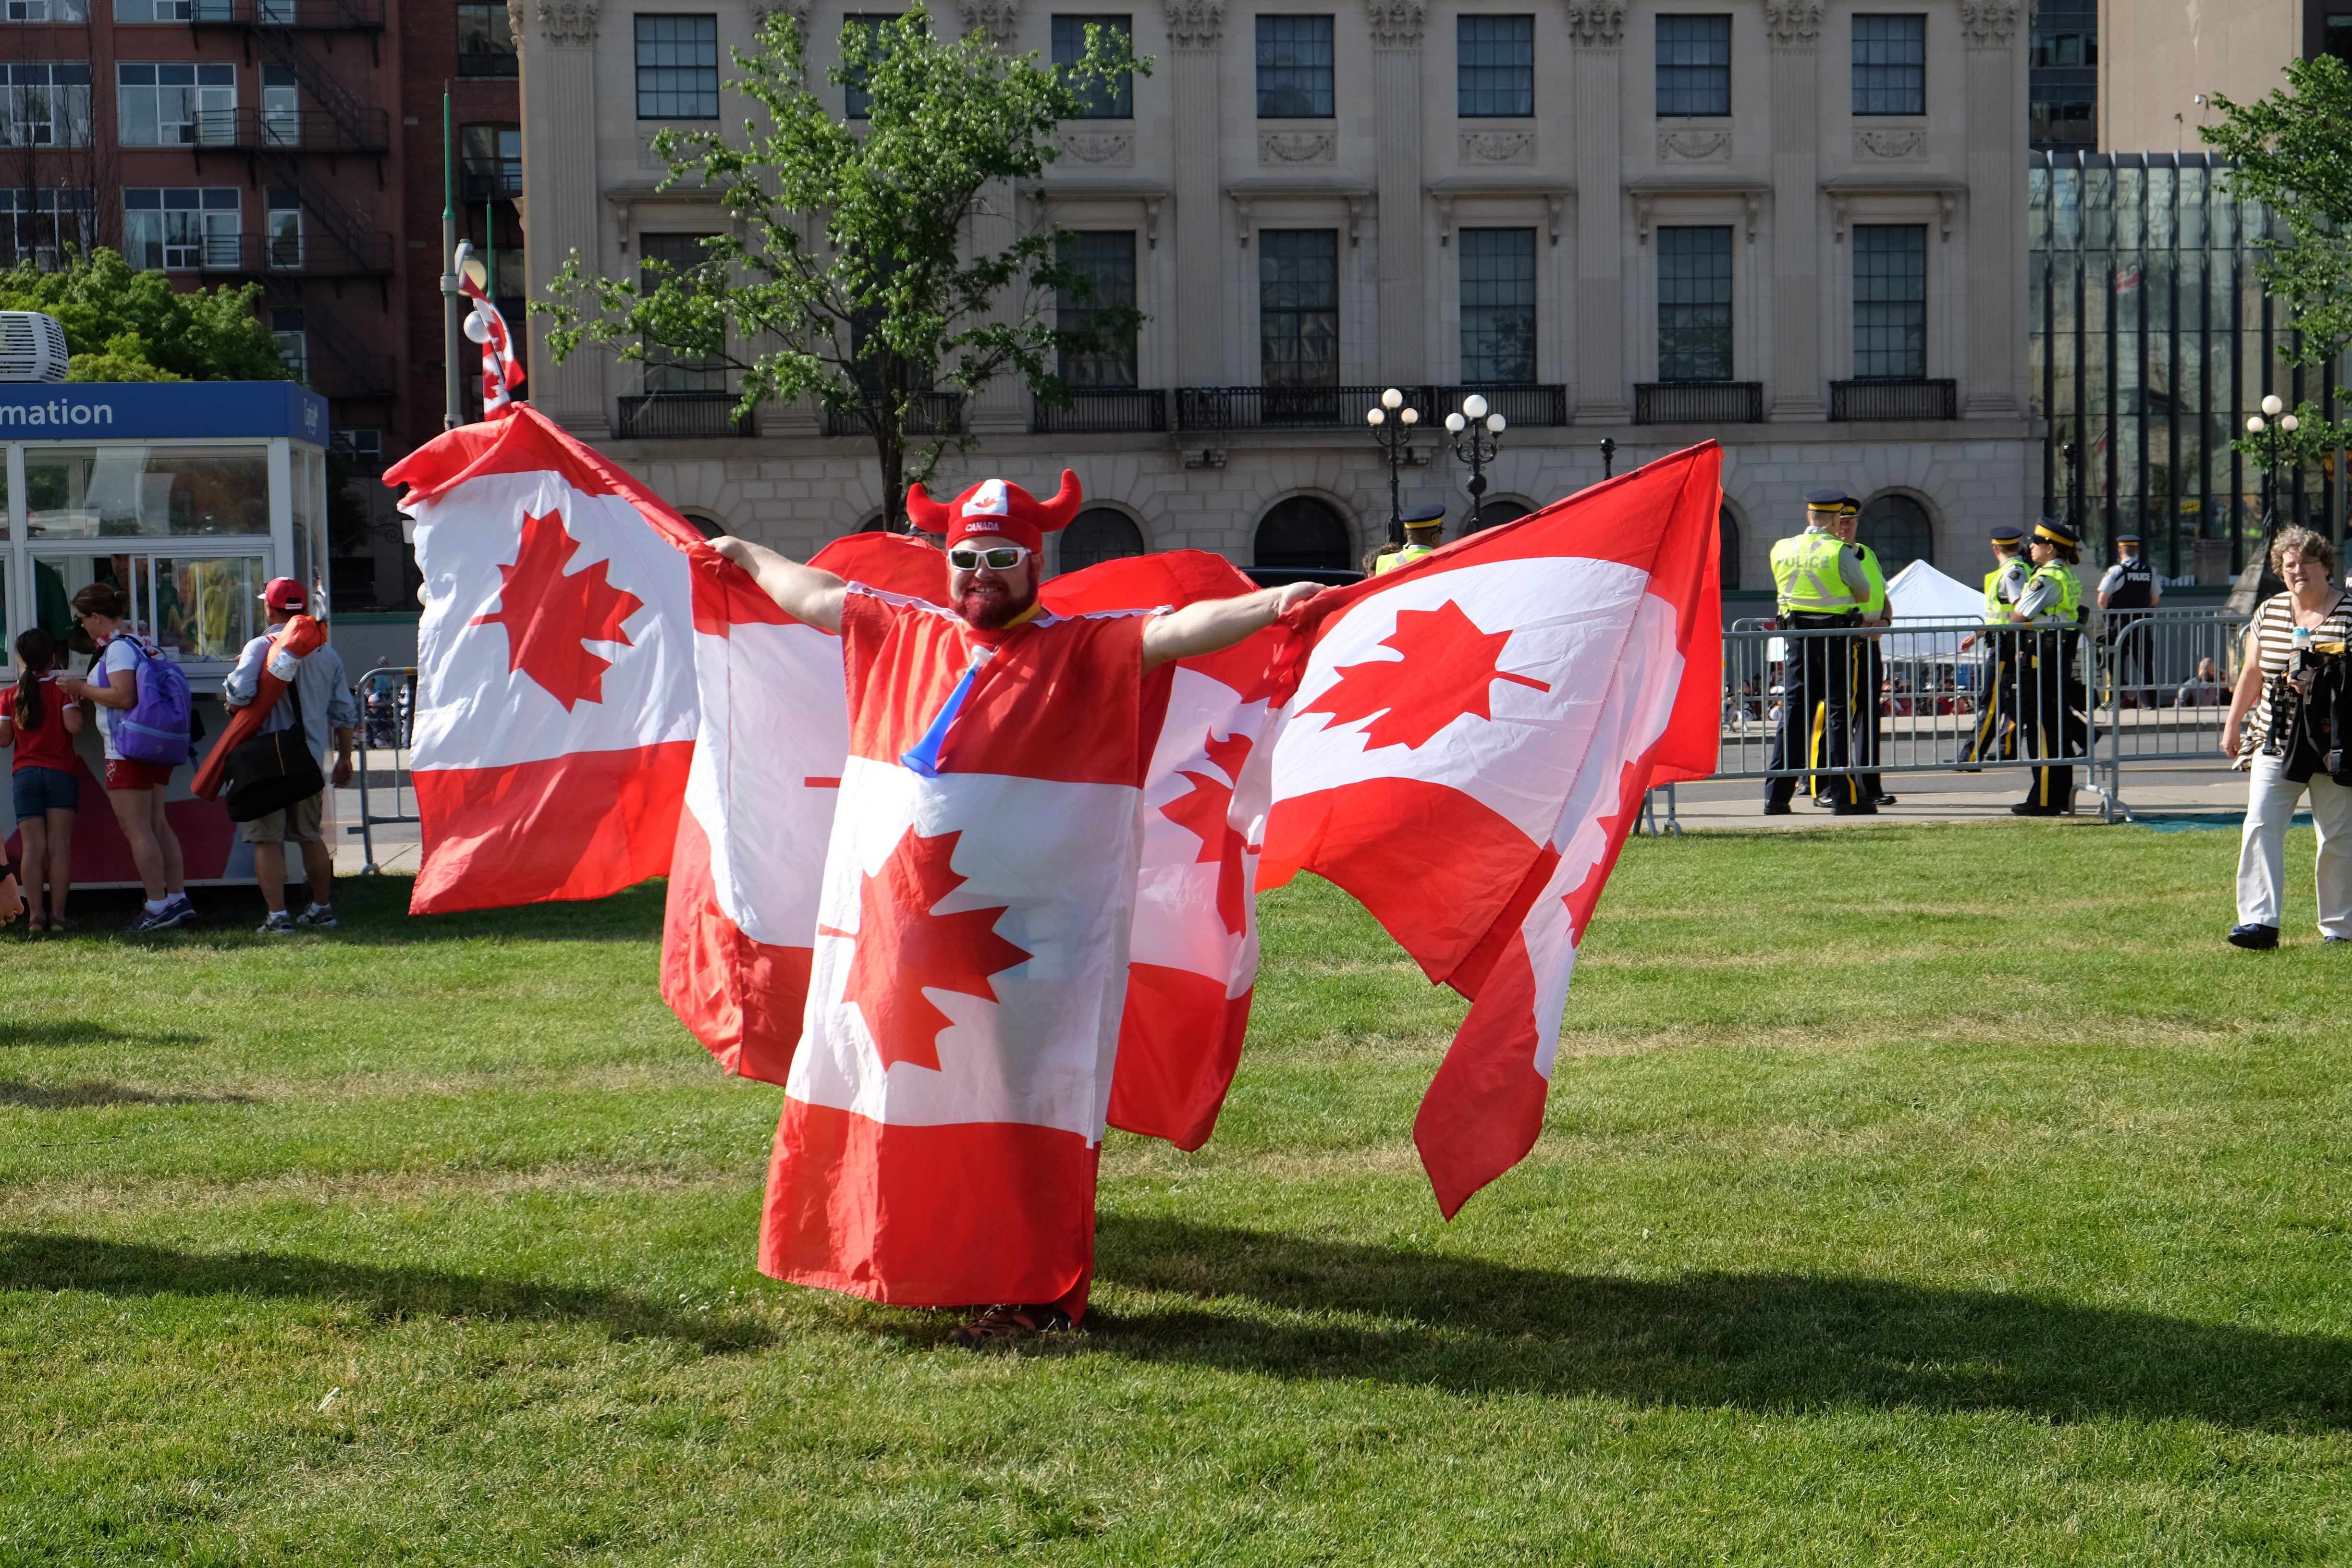 Not much subtlety here, but I like this guy's outfit as we got ready for the changing of the guard on Parliament Hill on Friday morning.